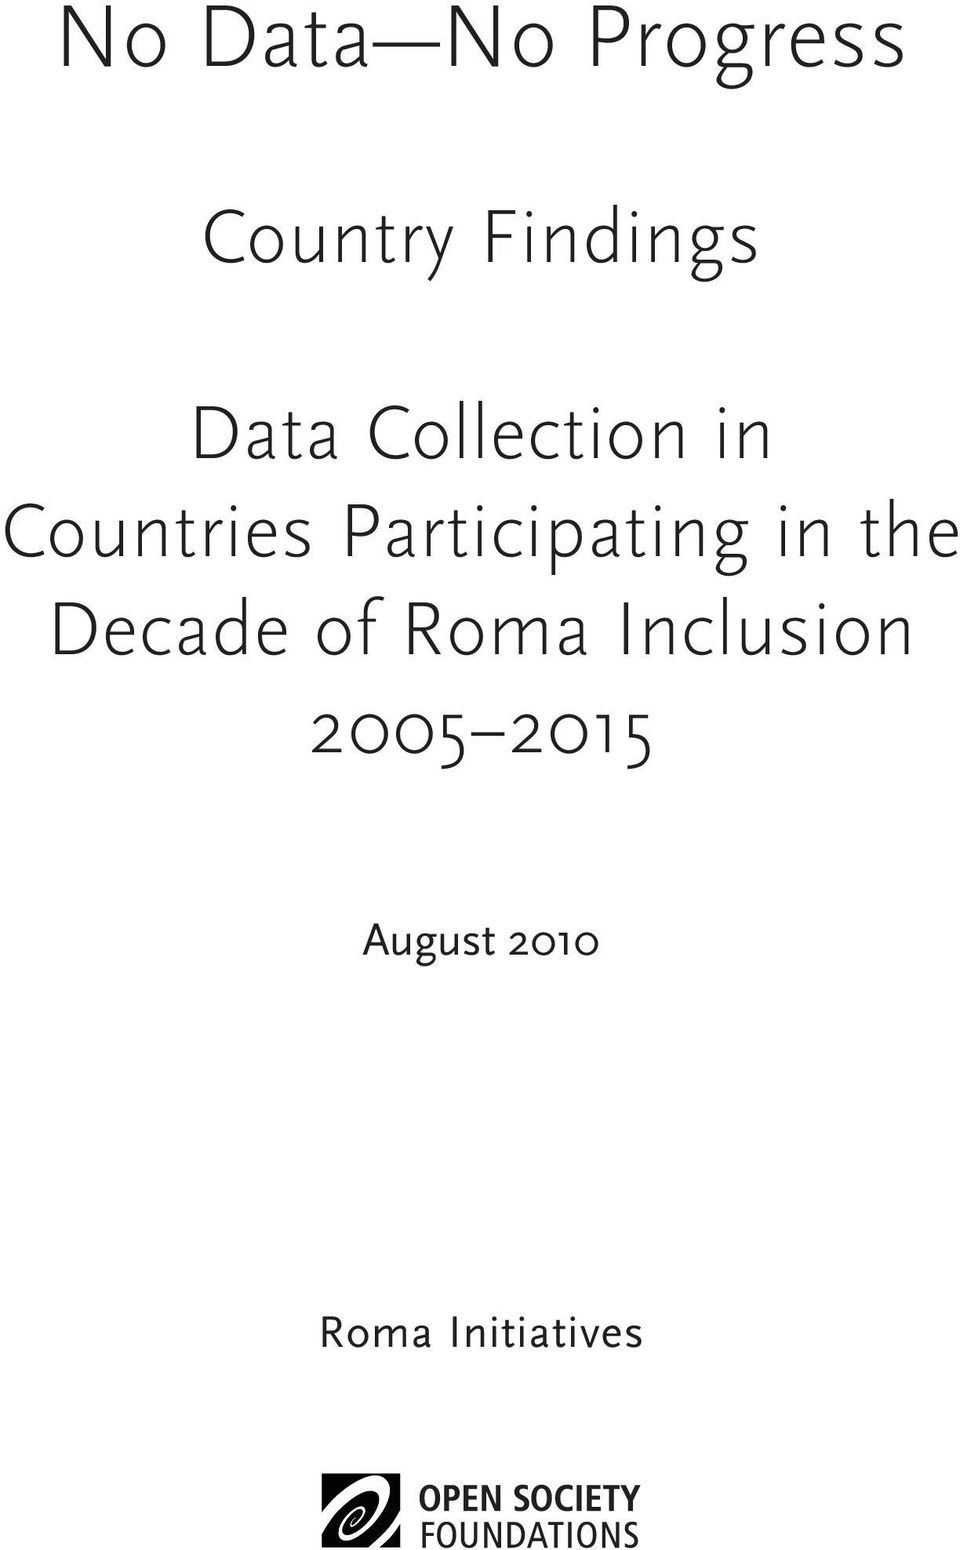 Participating in the Decade of Roma